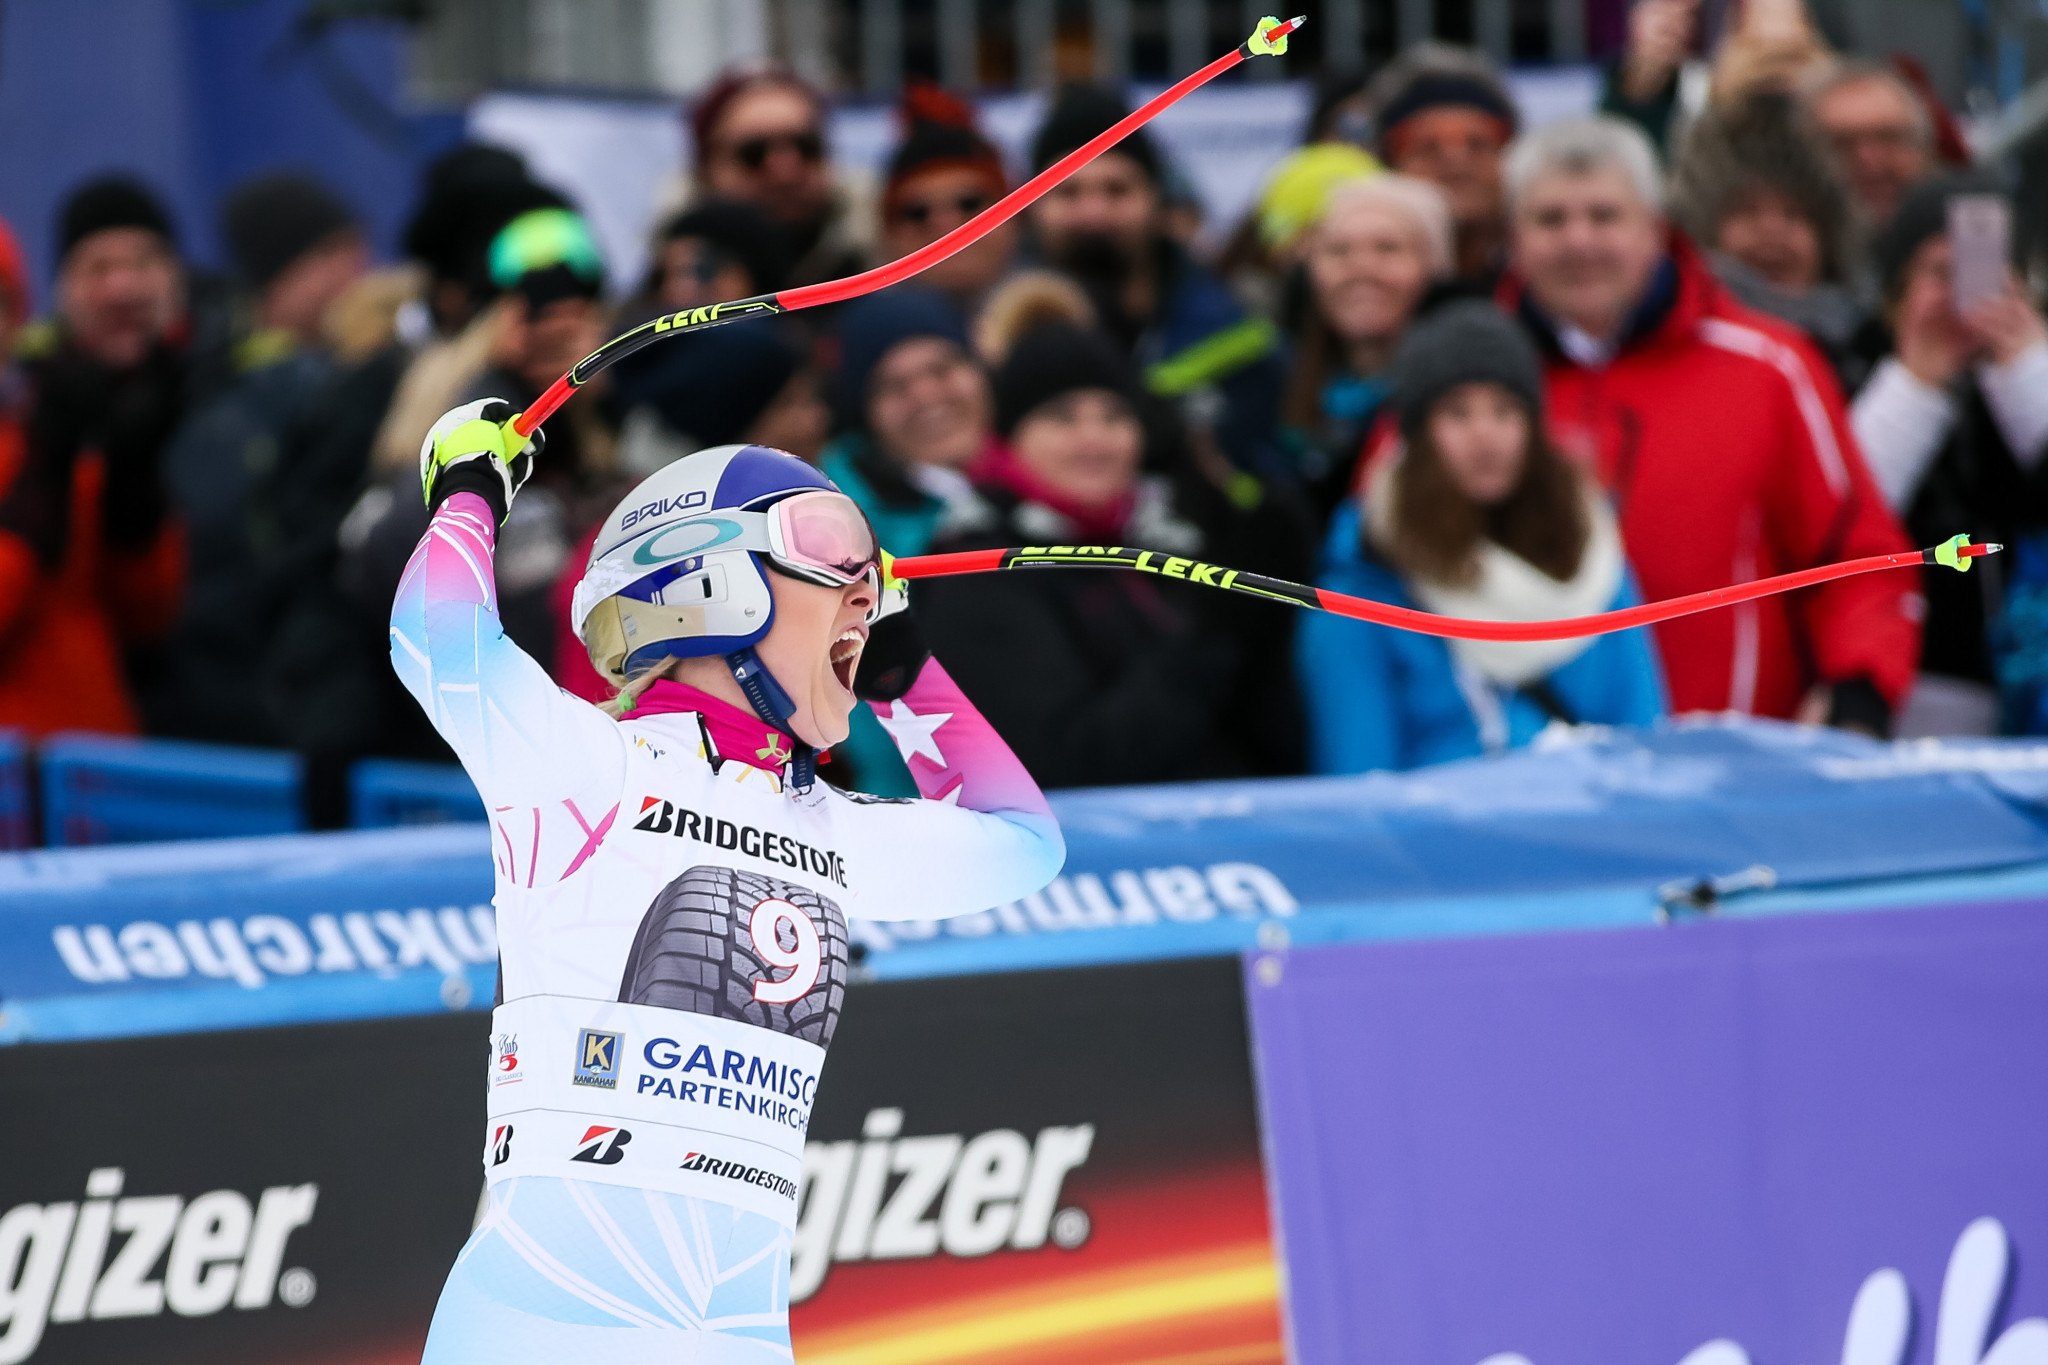 The United States' Lindsey Vonn claimed her 80th victory on the FIS Alpine Skiing World Cup tour after winning a shortened women's downhill event in Garmisch-Partenkirchen in Germany today ©Getty Images